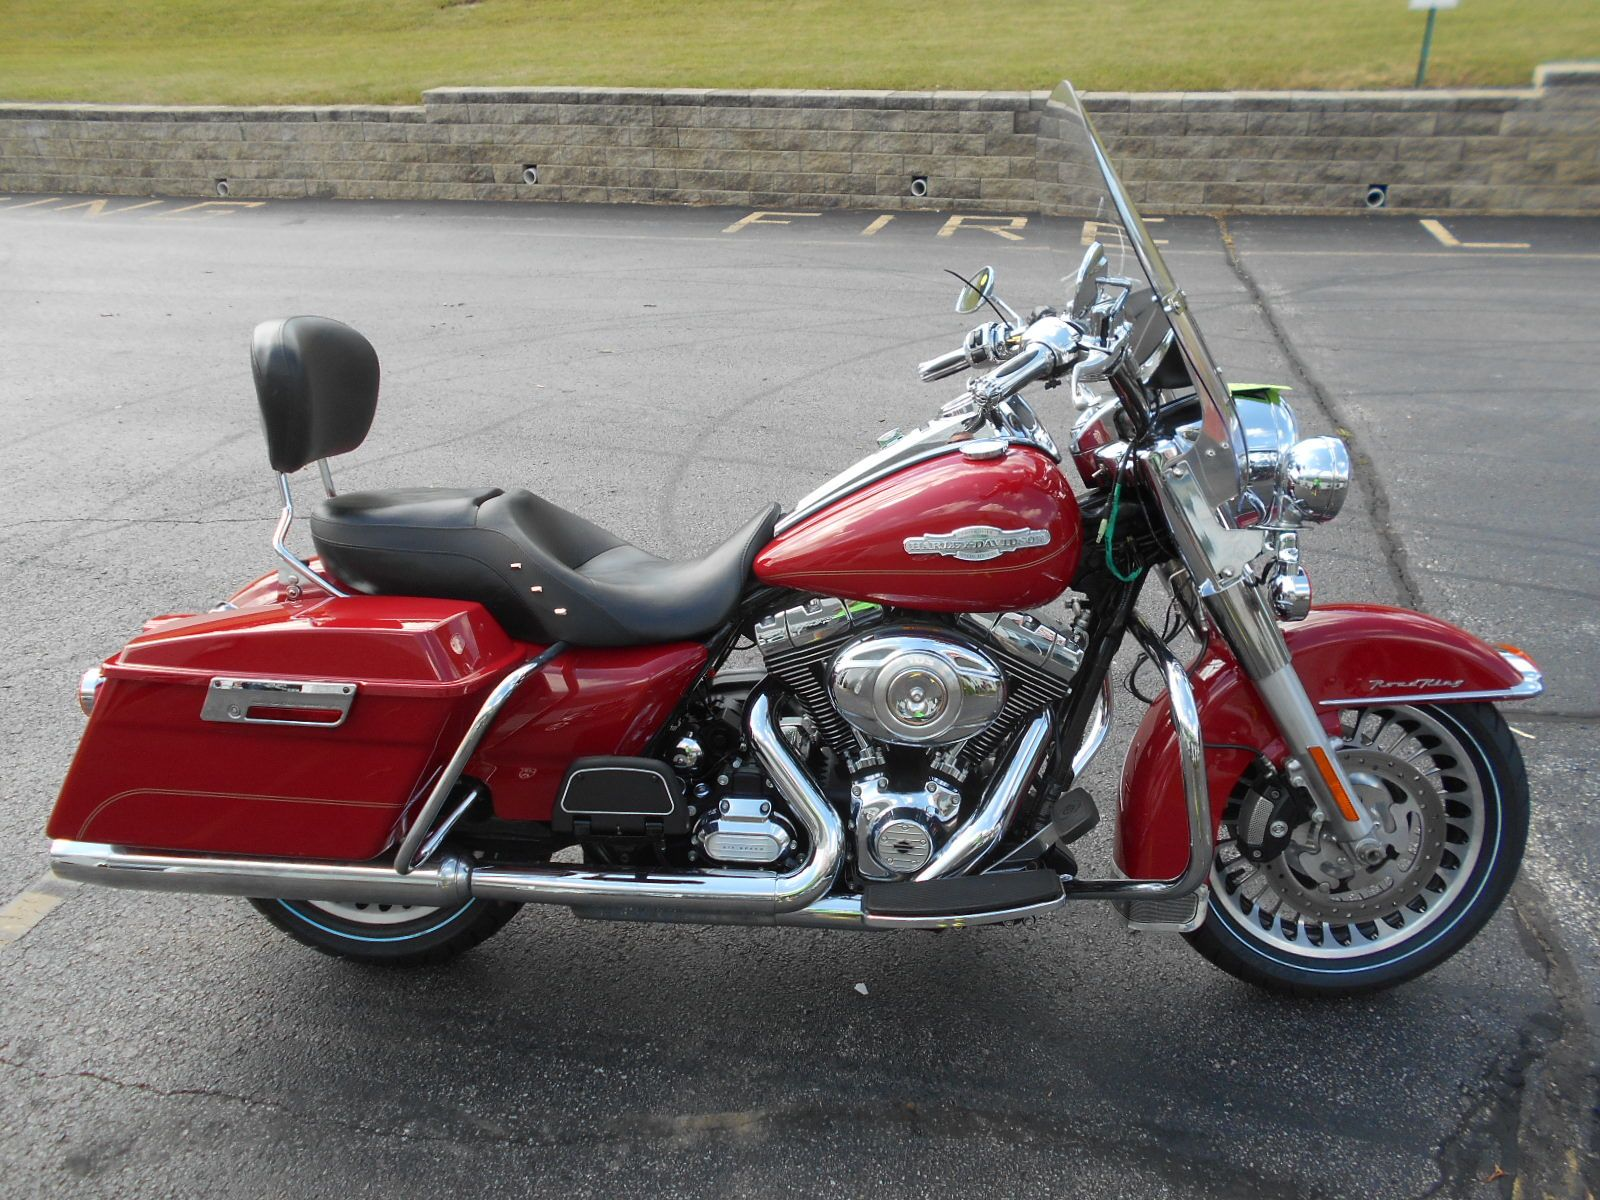 This is my harley davidson road king firefighter special edition